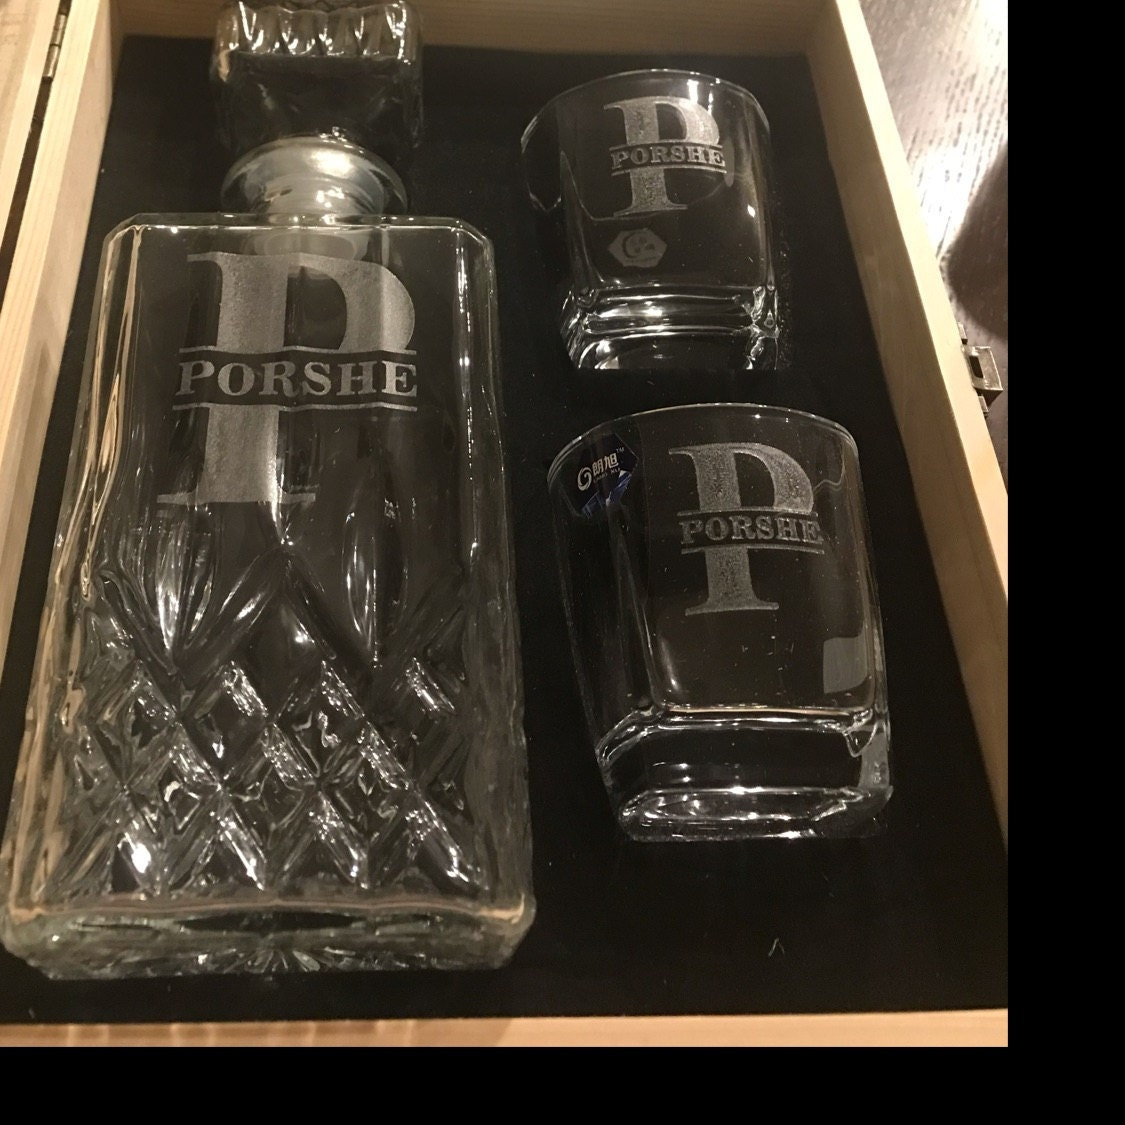 Marquita Smith added a photo of their purchase